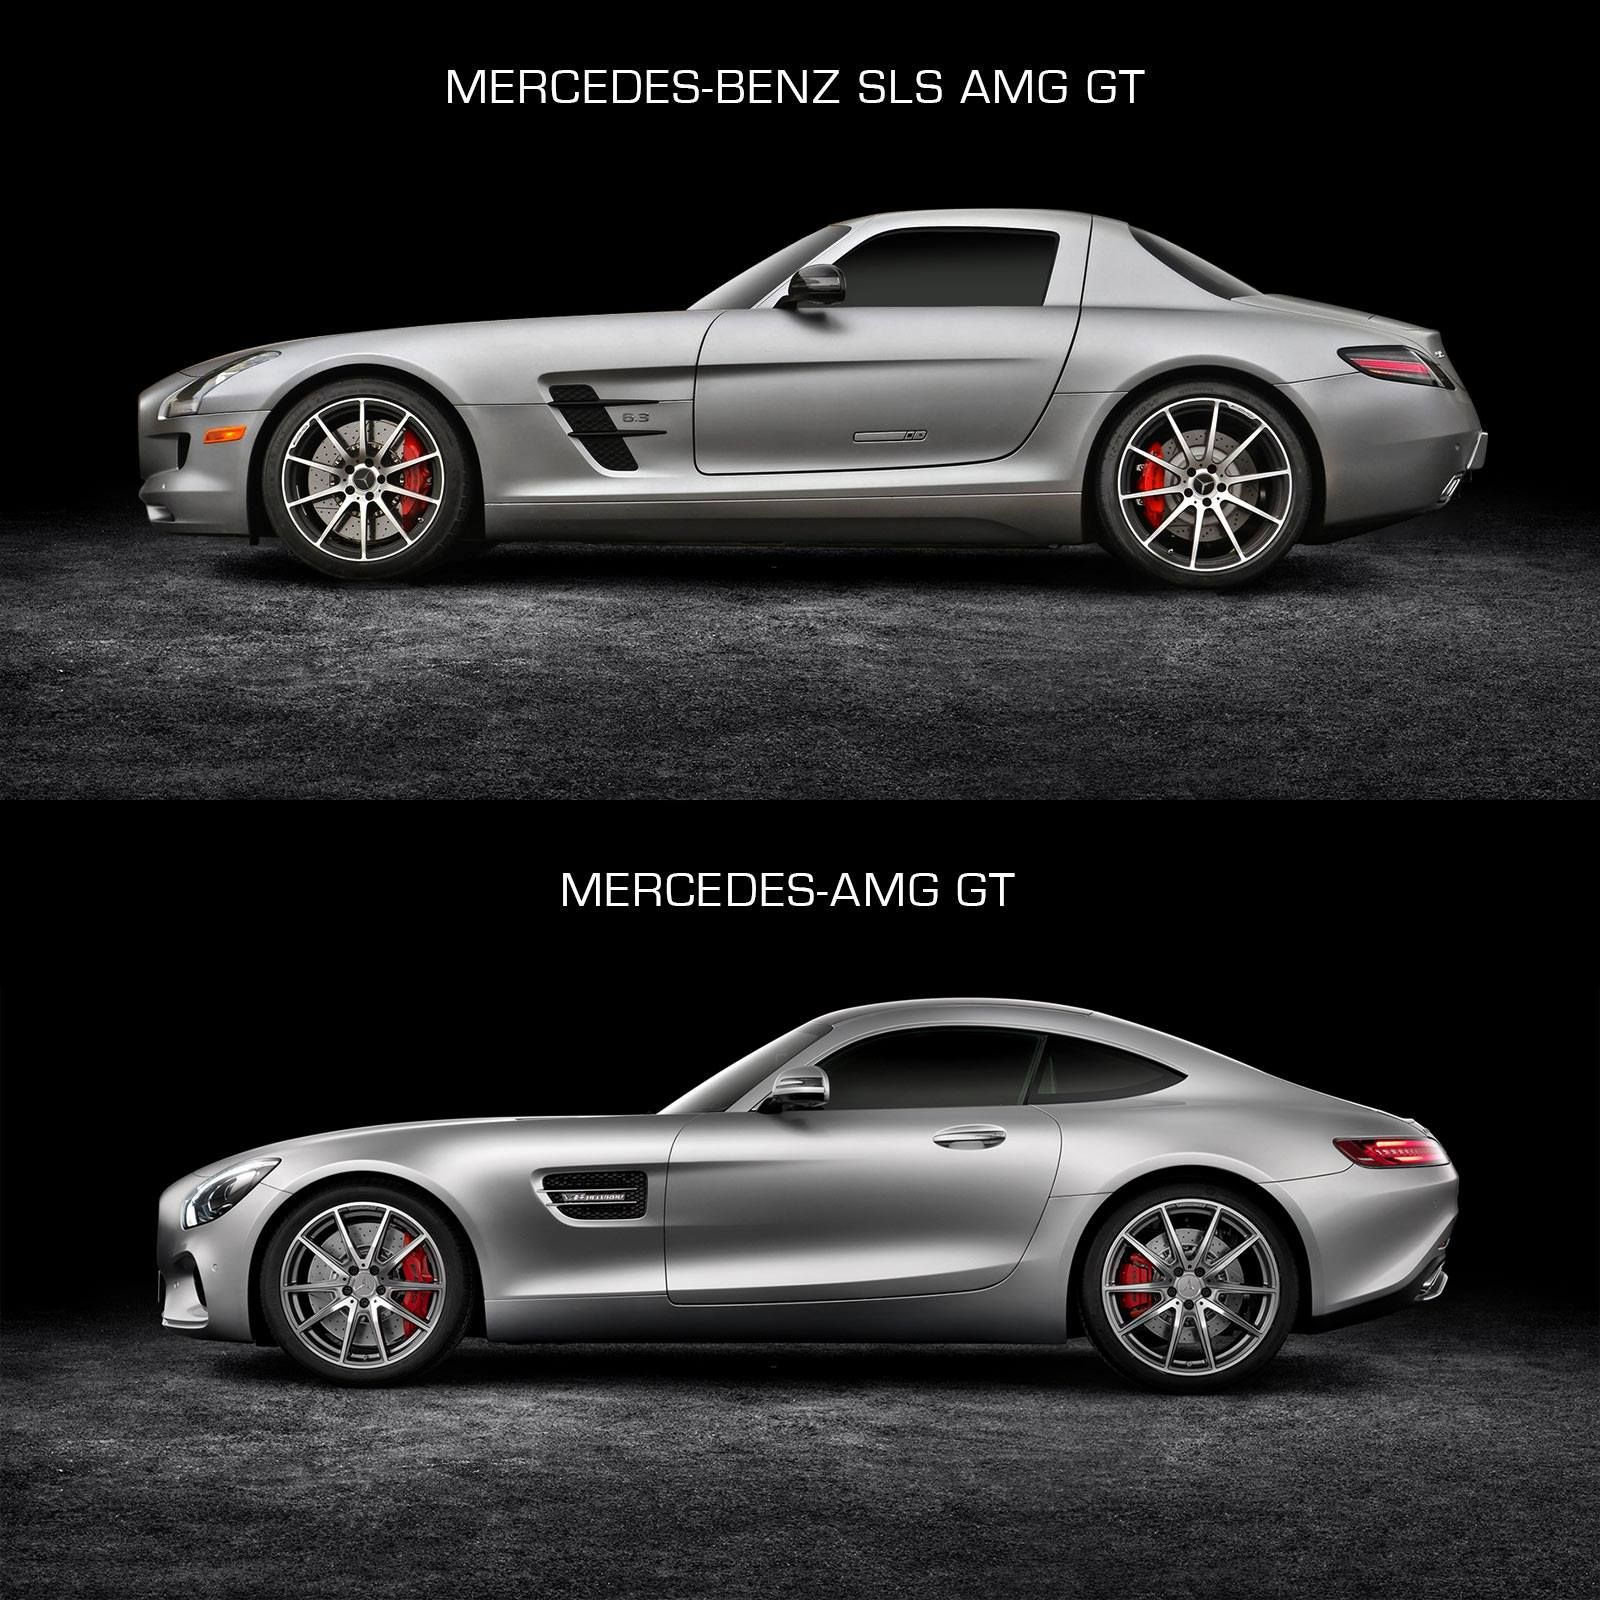 Mercedes Sls Amg Gt >> Design Comparison The 2010 Sls Amg Gt And The New Mercedes